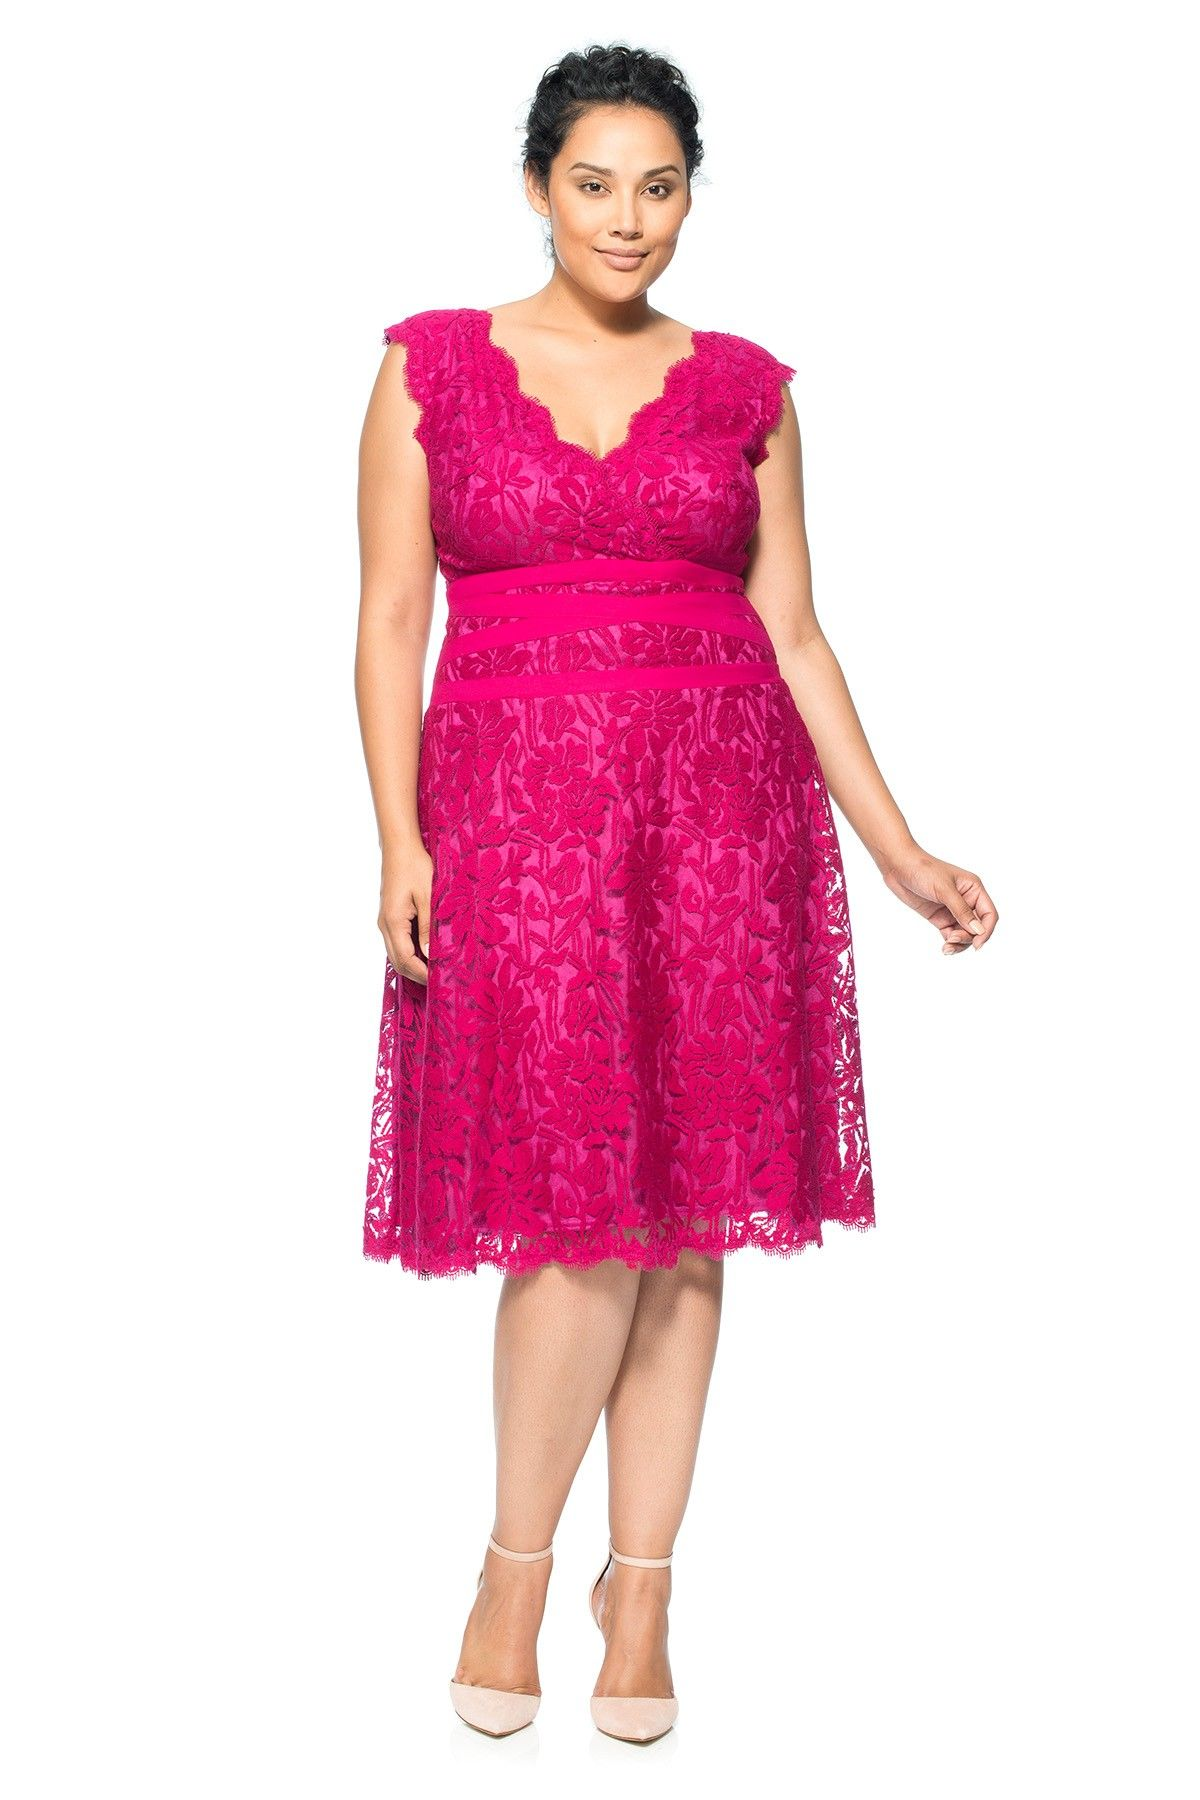 Embroidered Lace V-Neck A-Line Dress - PLUS SIZE | Tadashi Shoji ...